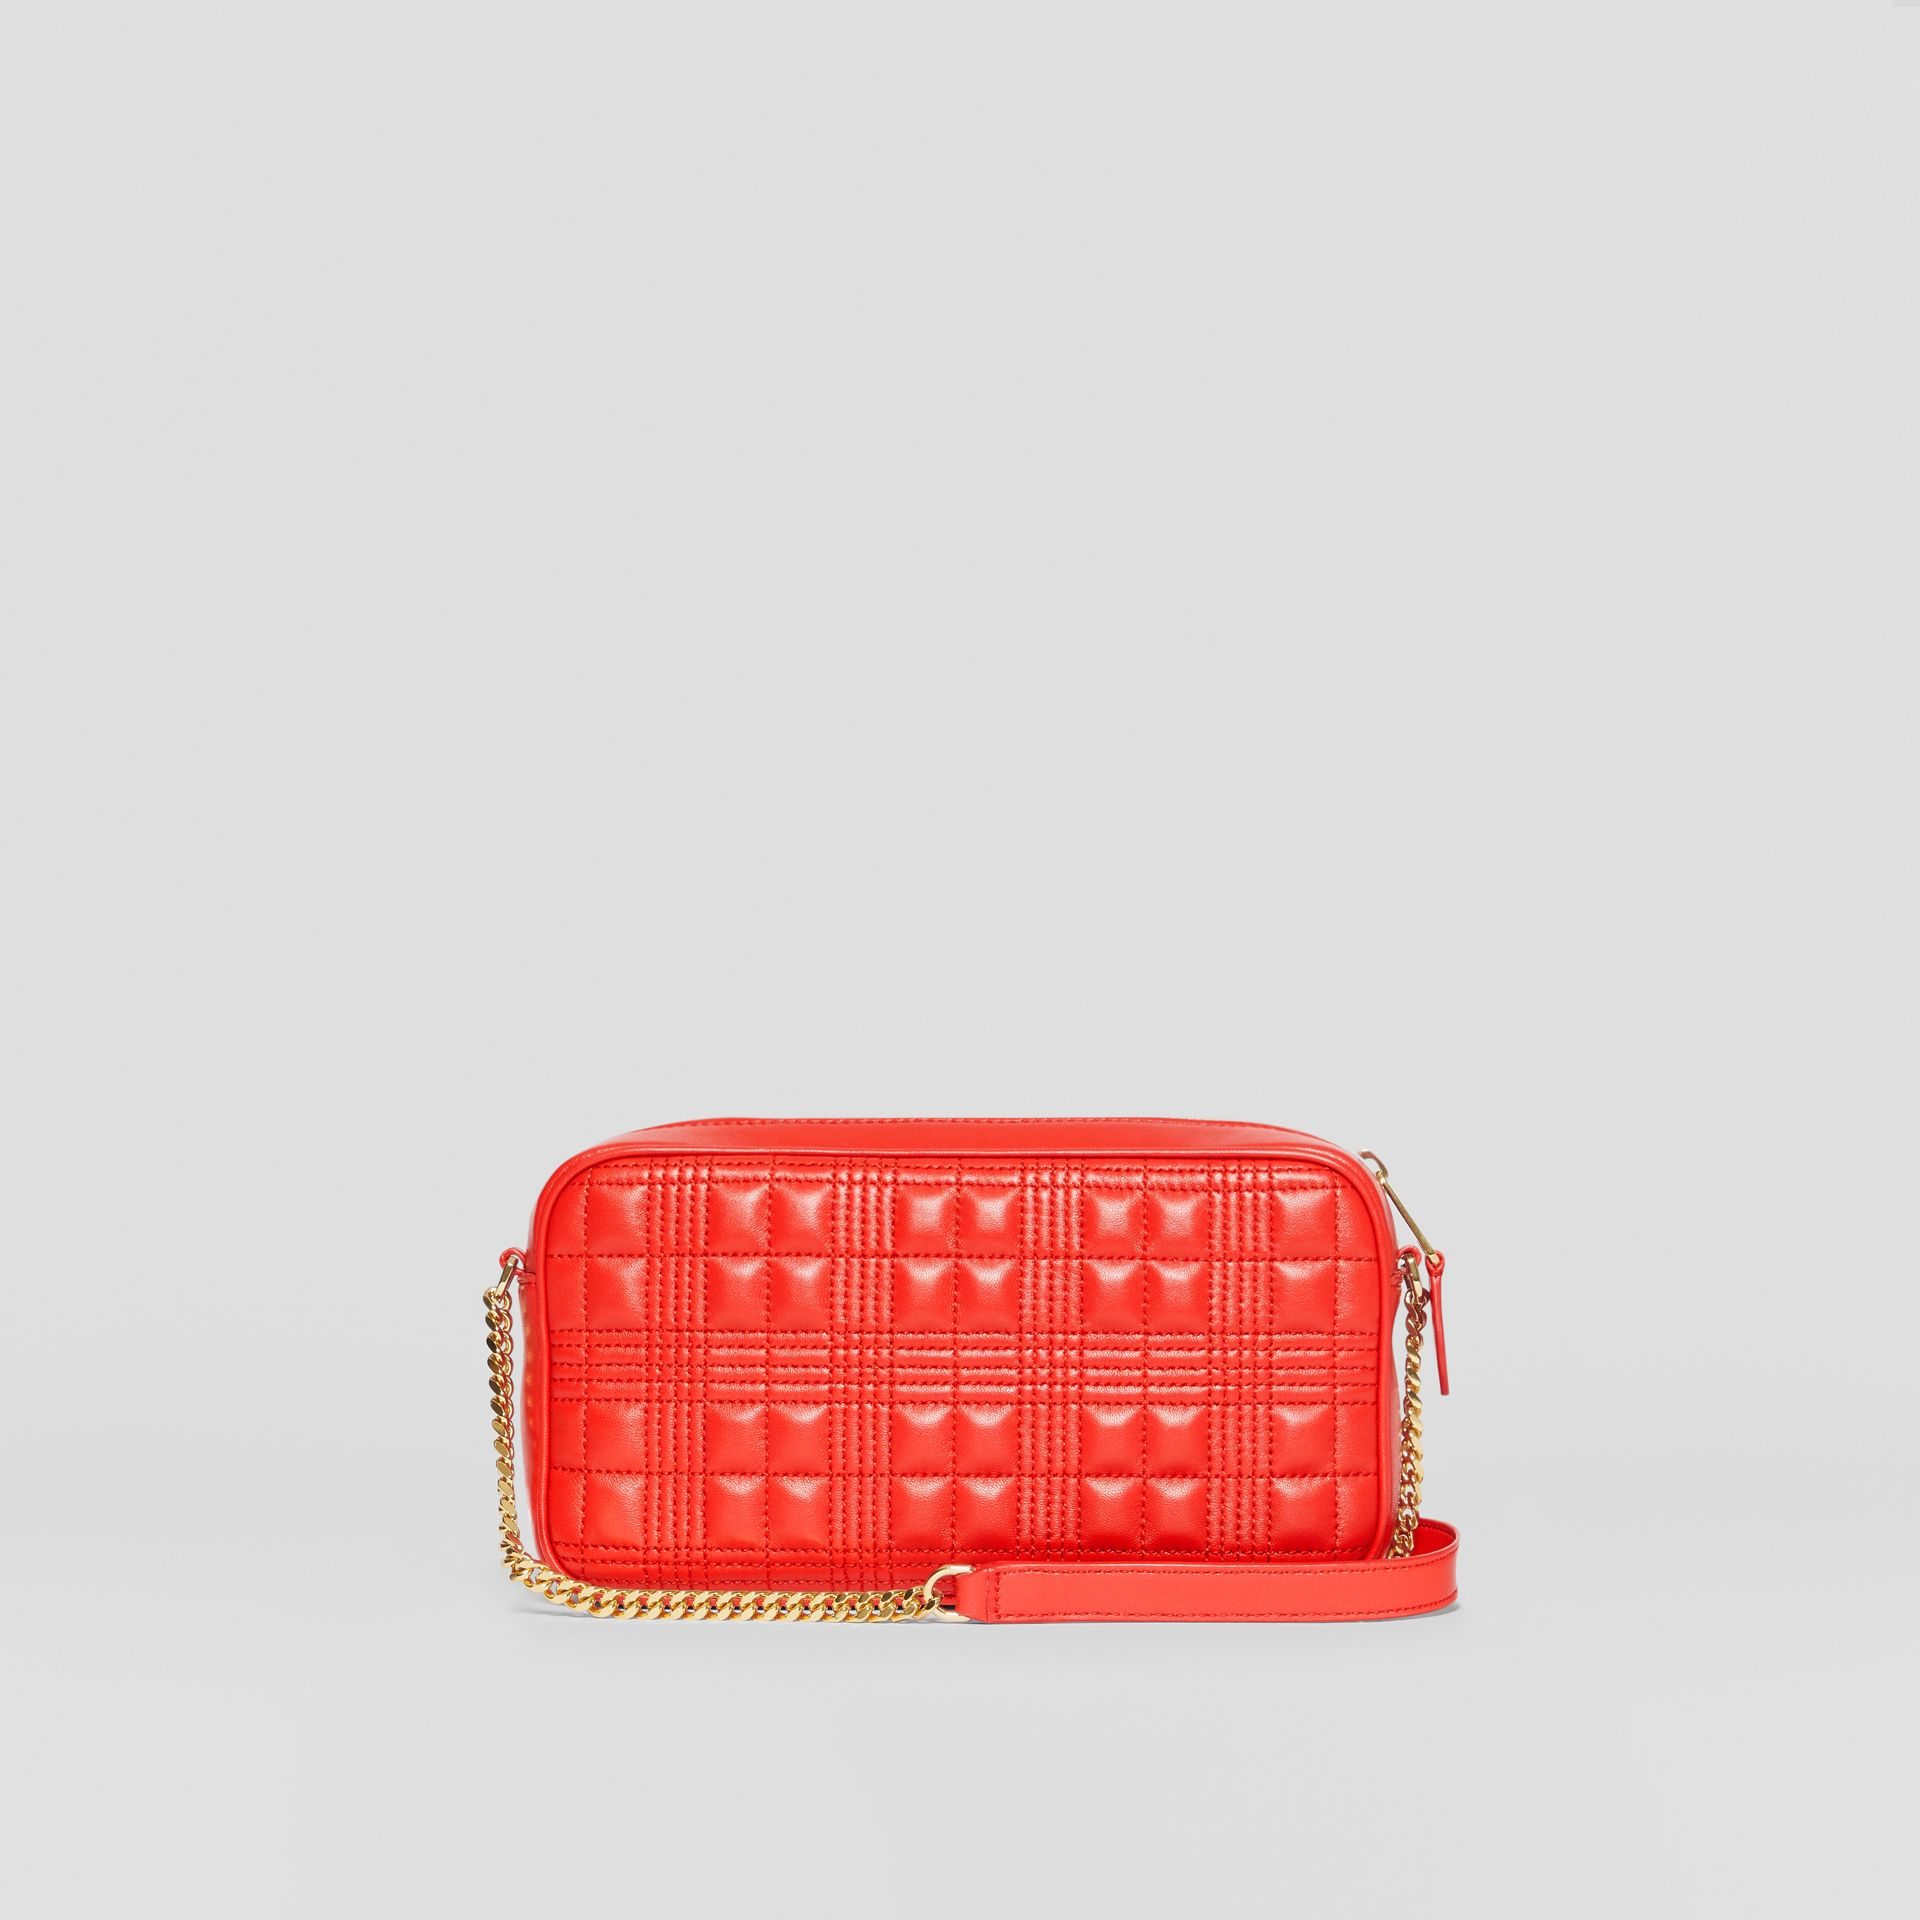 Quilted Check Lambskin Camera Bag in Bright Red - Women | Burberry Australia - gallery image 5